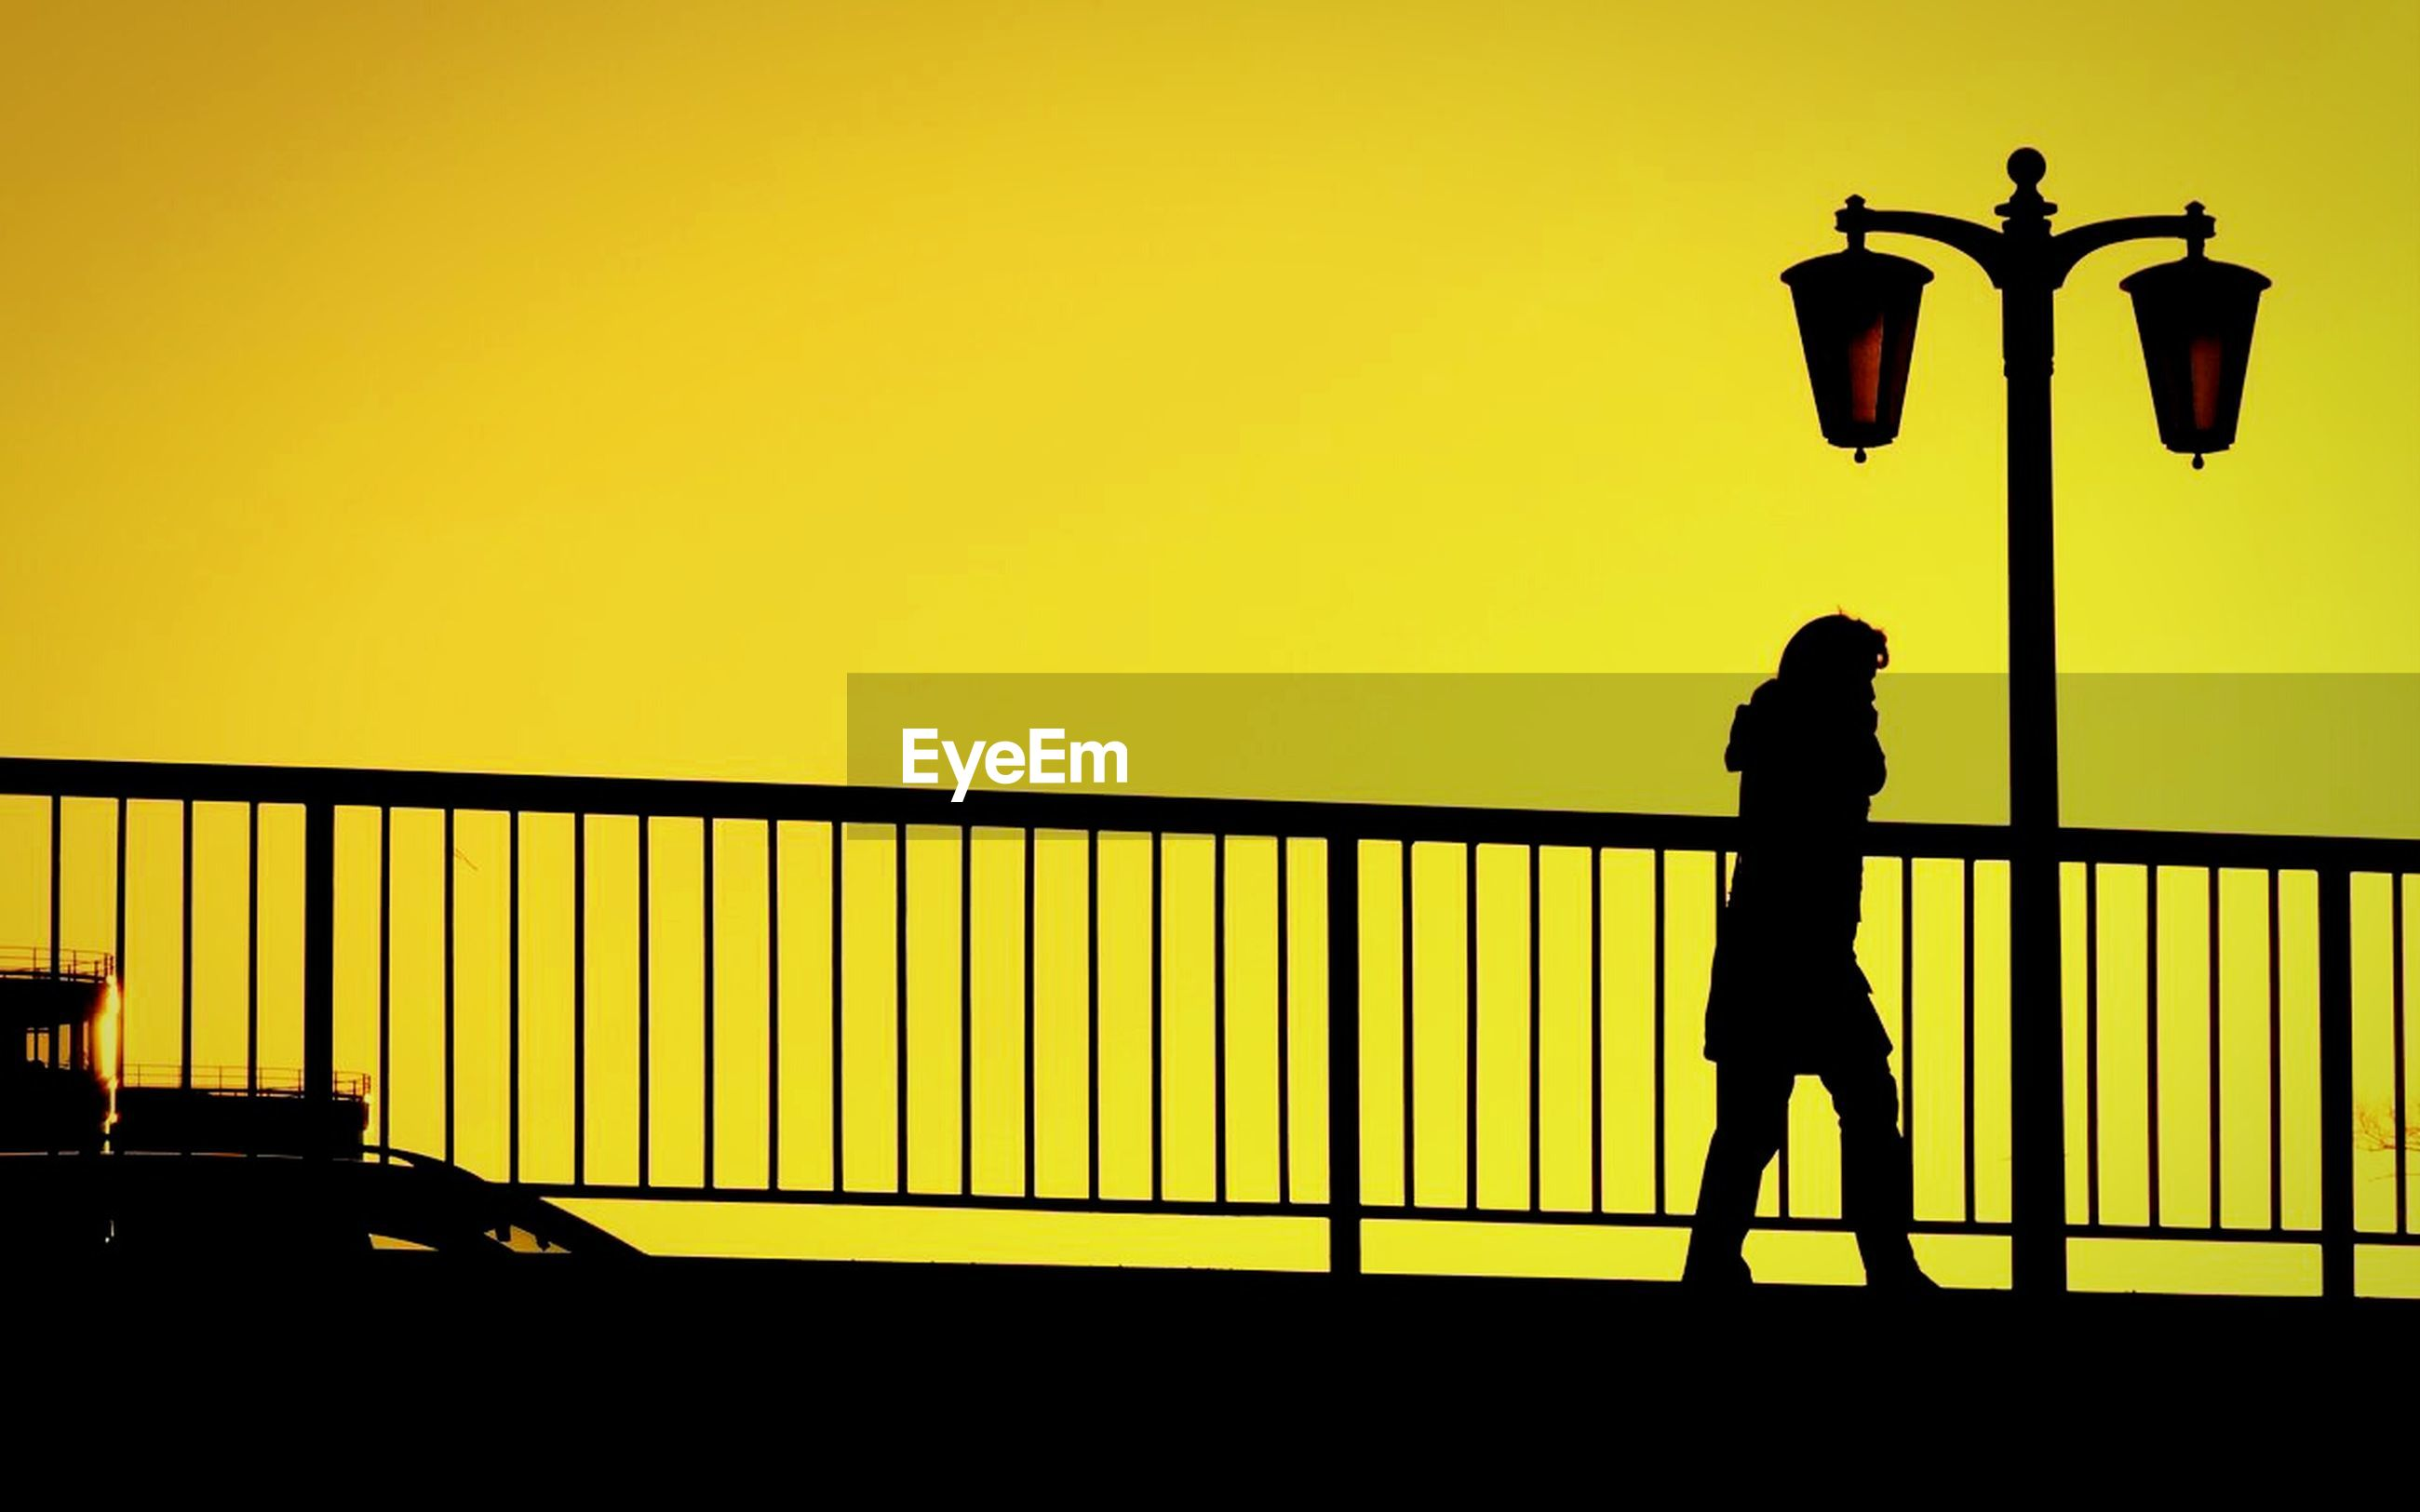 Side view of silhouette person walking on bridge against clear yellow sky